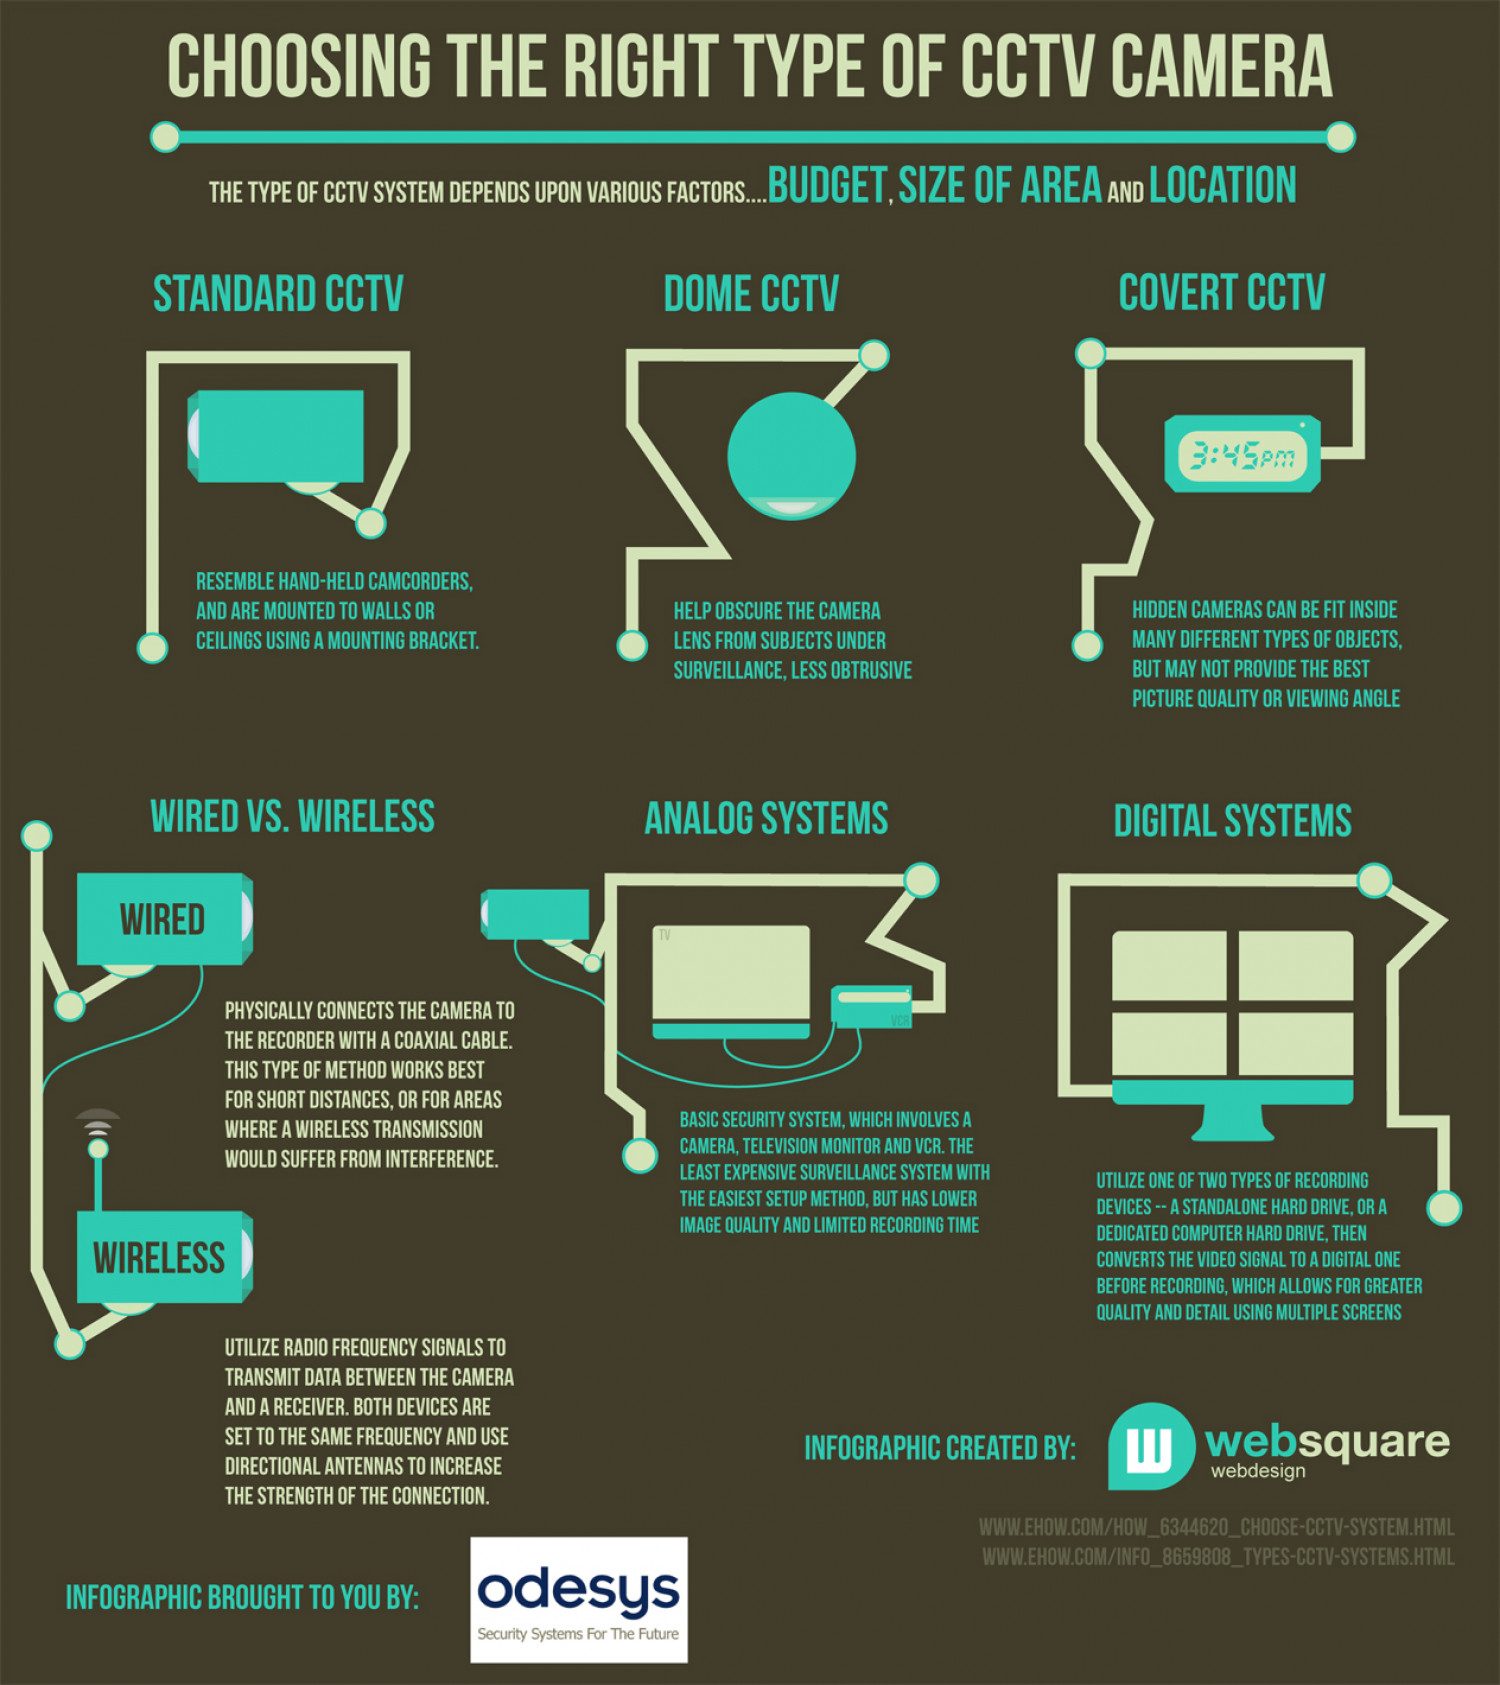 Choosing the Right Type of CCTV Camera Infographic